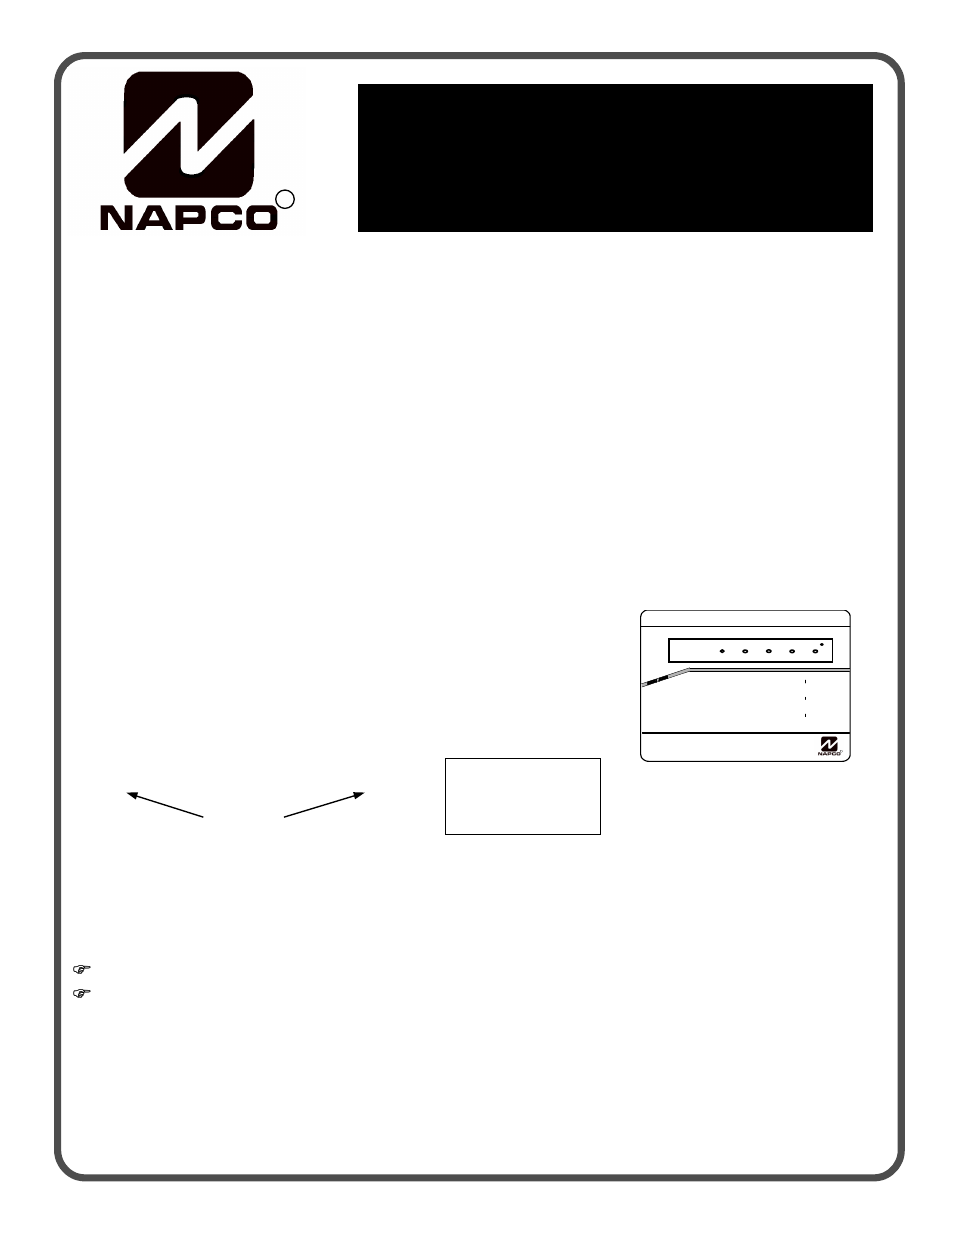 Napco Security Technologies GEM-P1632 User Manual | 16 pages | Also on